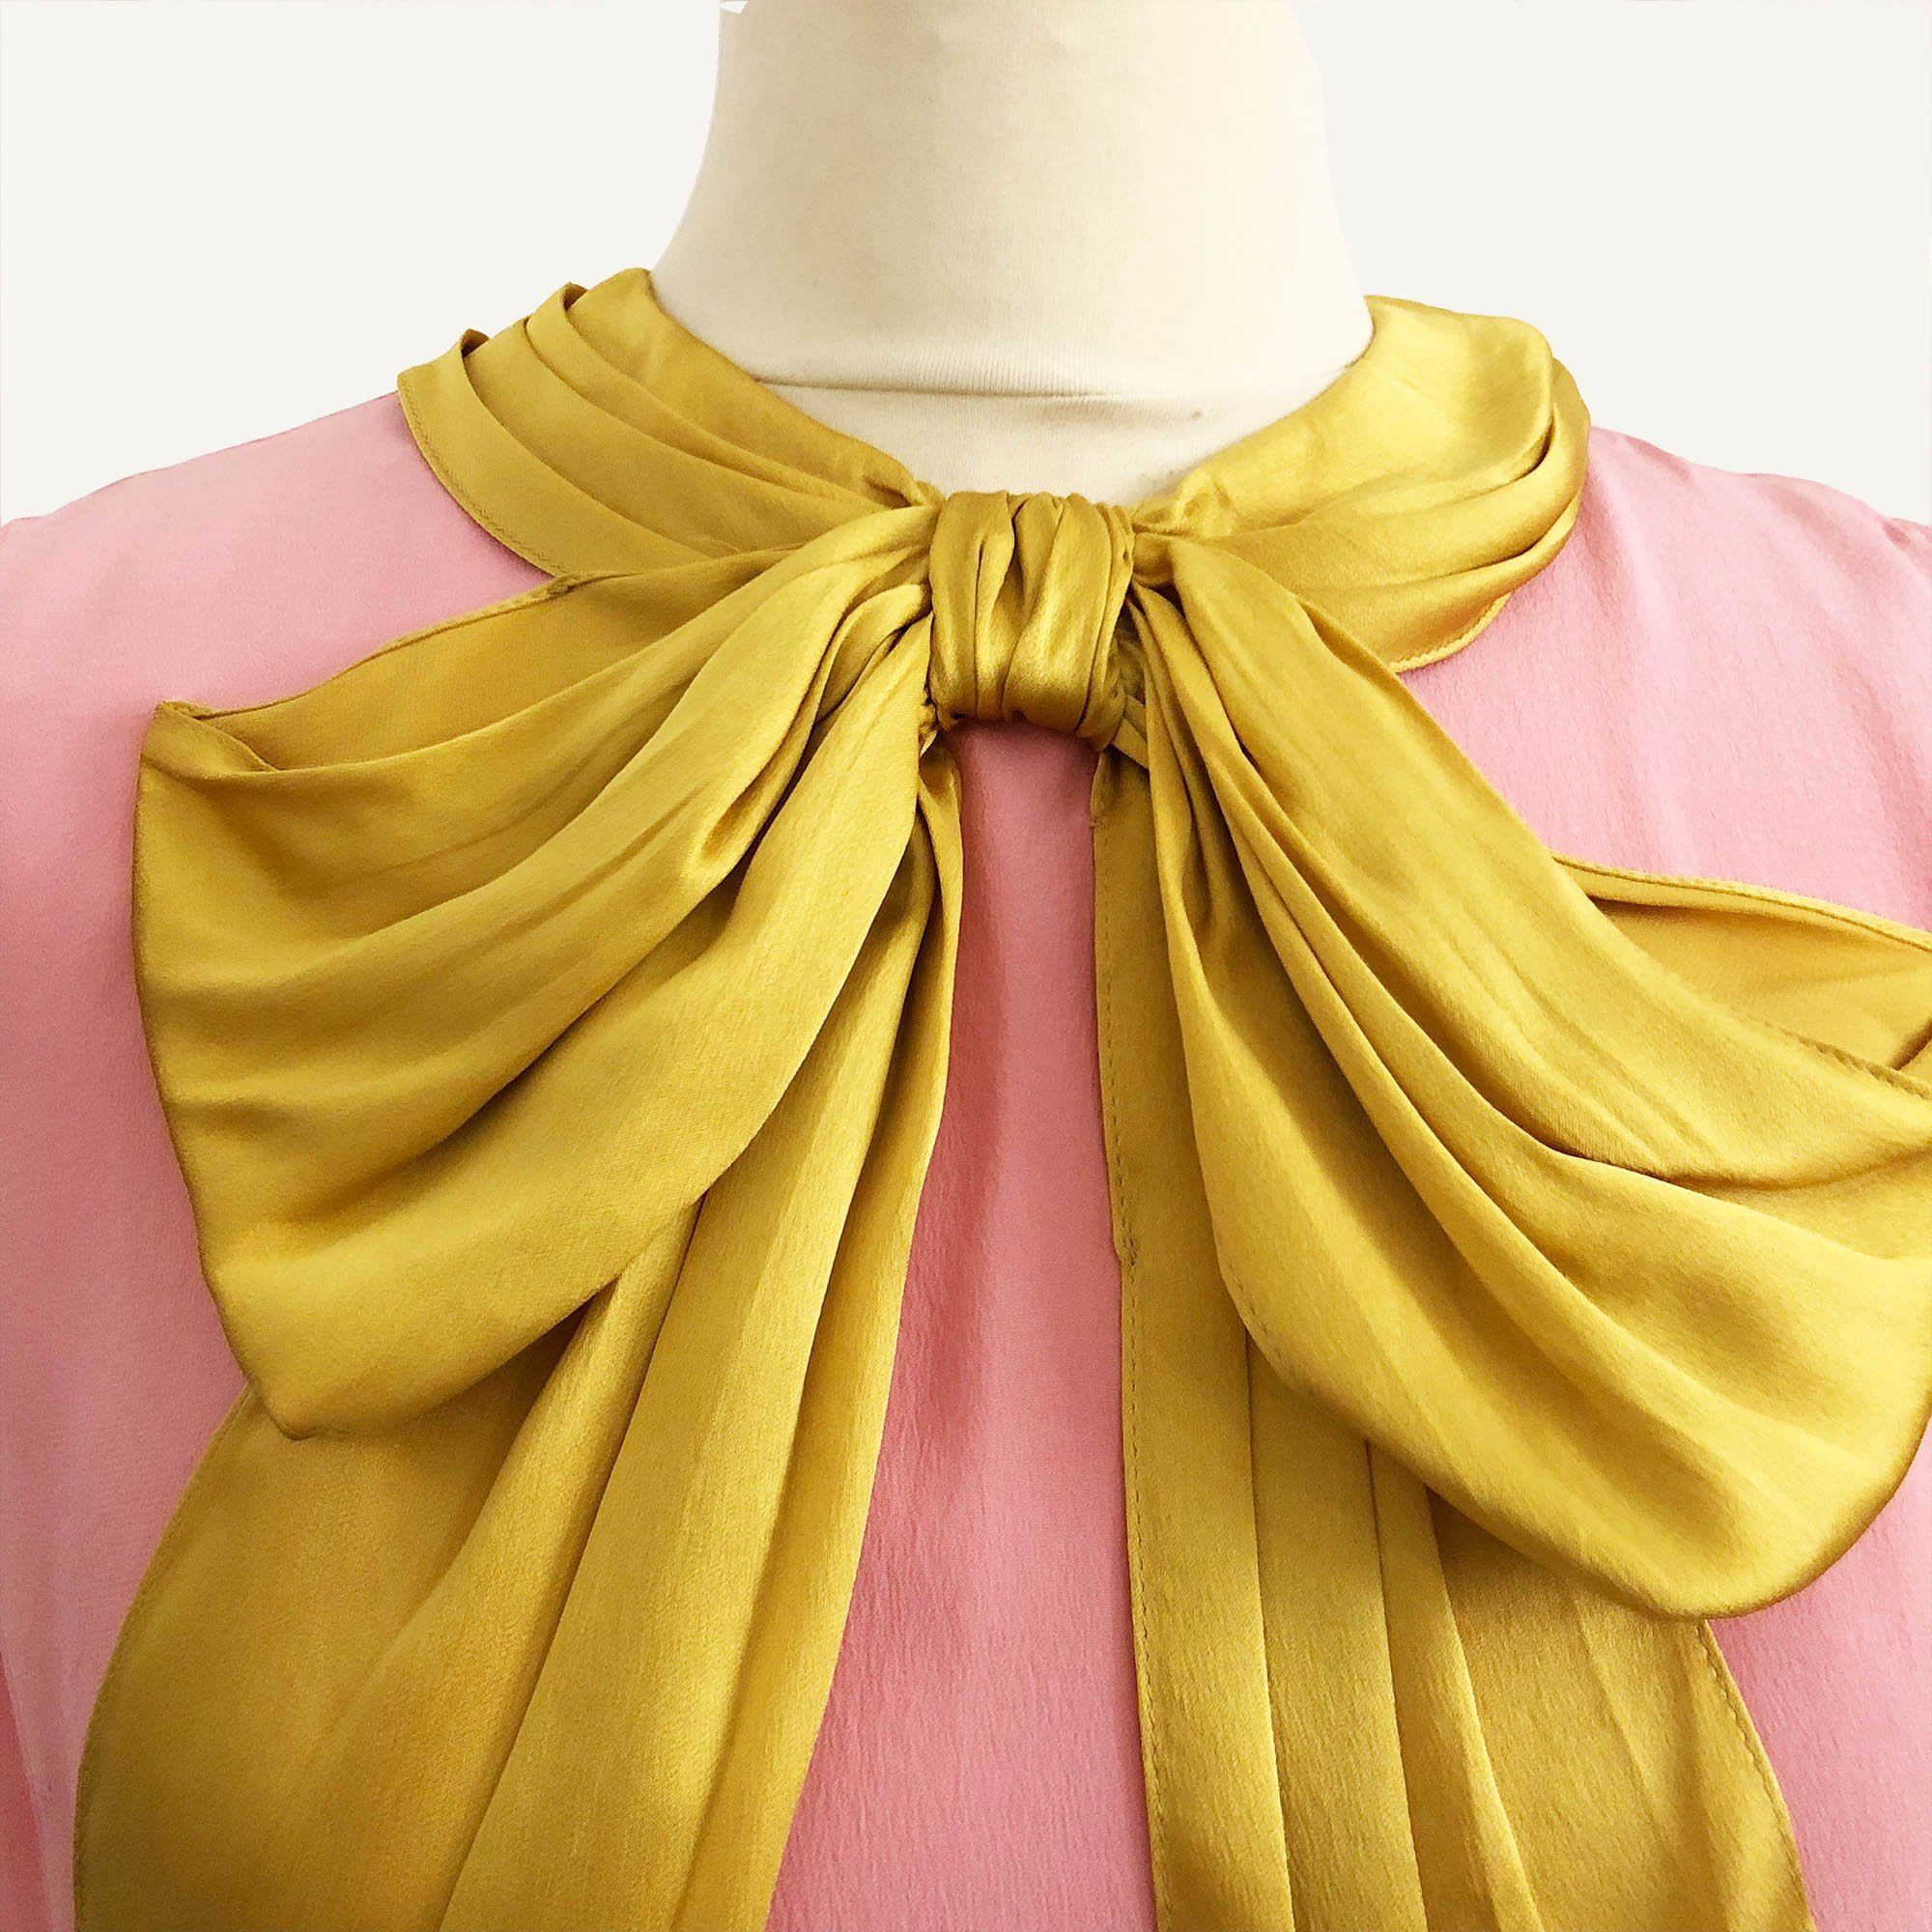 Gucci Pink Sleeveless Top with Yellow Bow